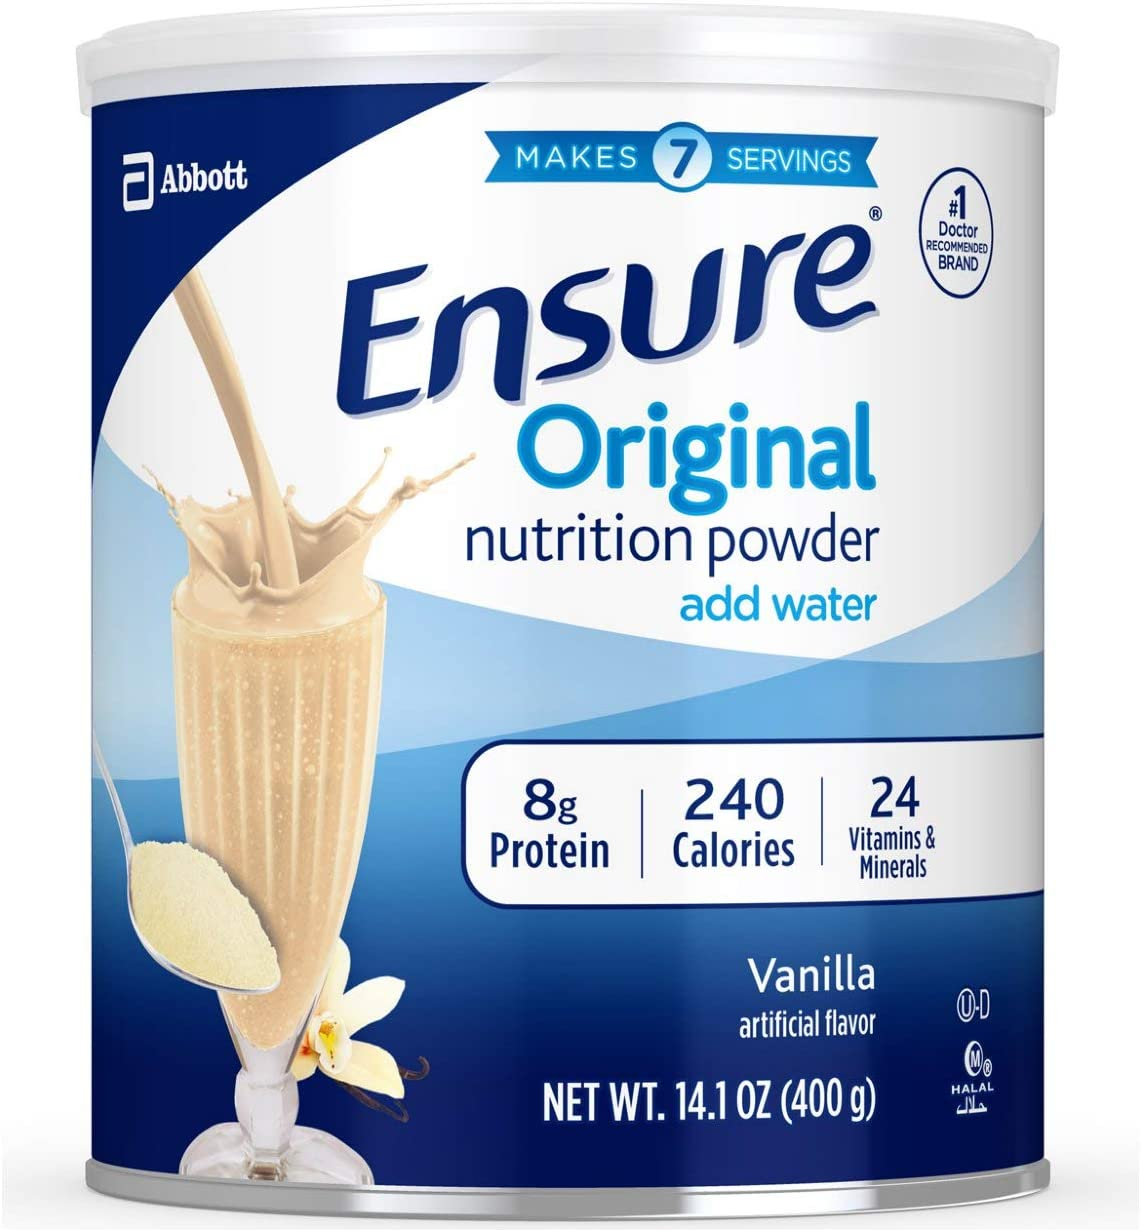 Ensure Original Nutrition Powder with 8 grams of protein, Meal Replacement, Vanilla, 6 count